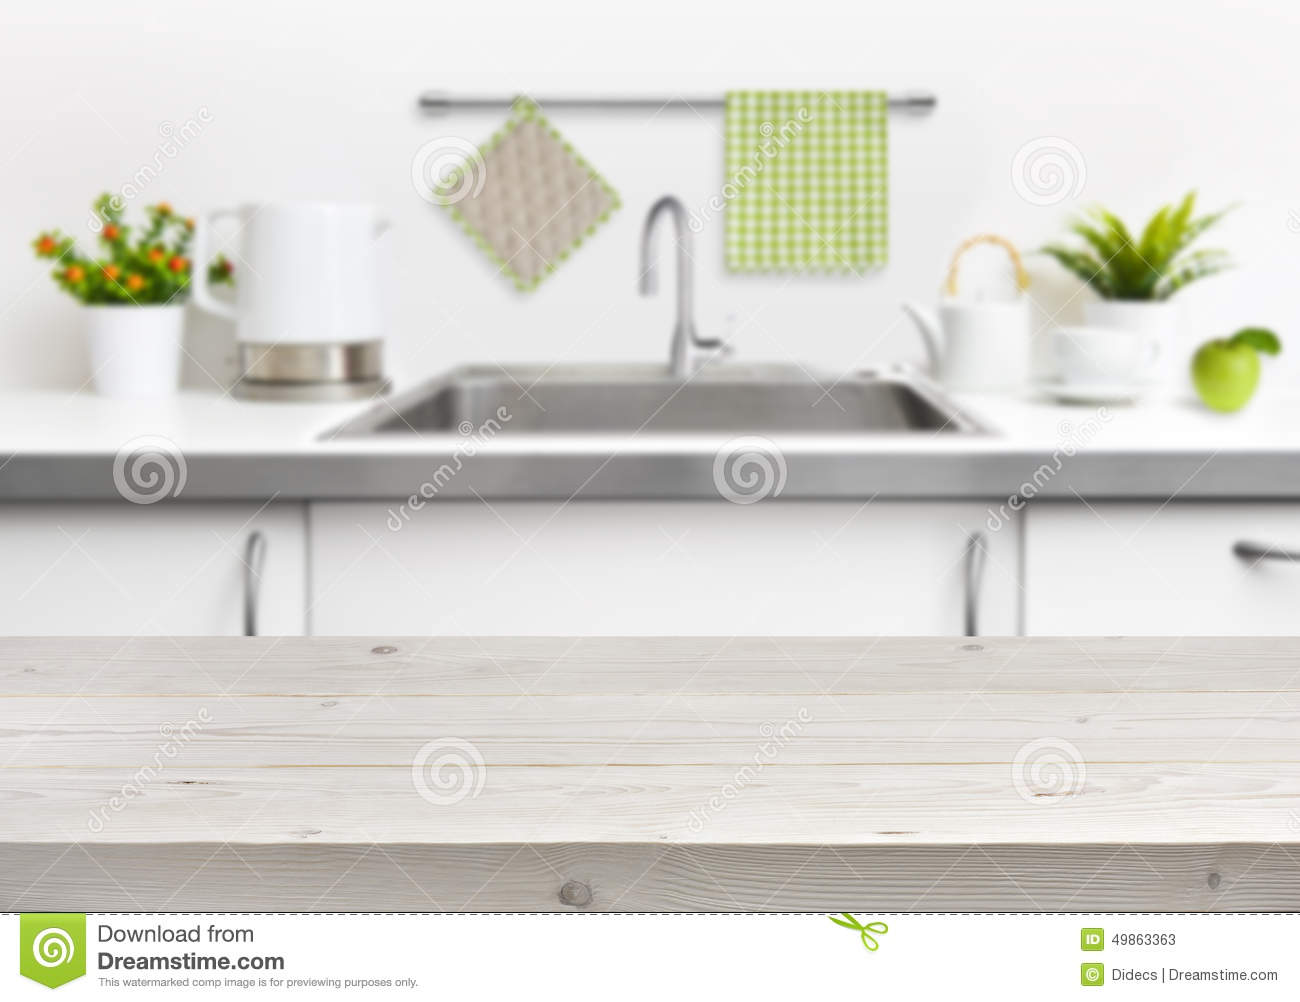 Wooden table on kitchen sink interior background stock for Wooden tabletop kitchen